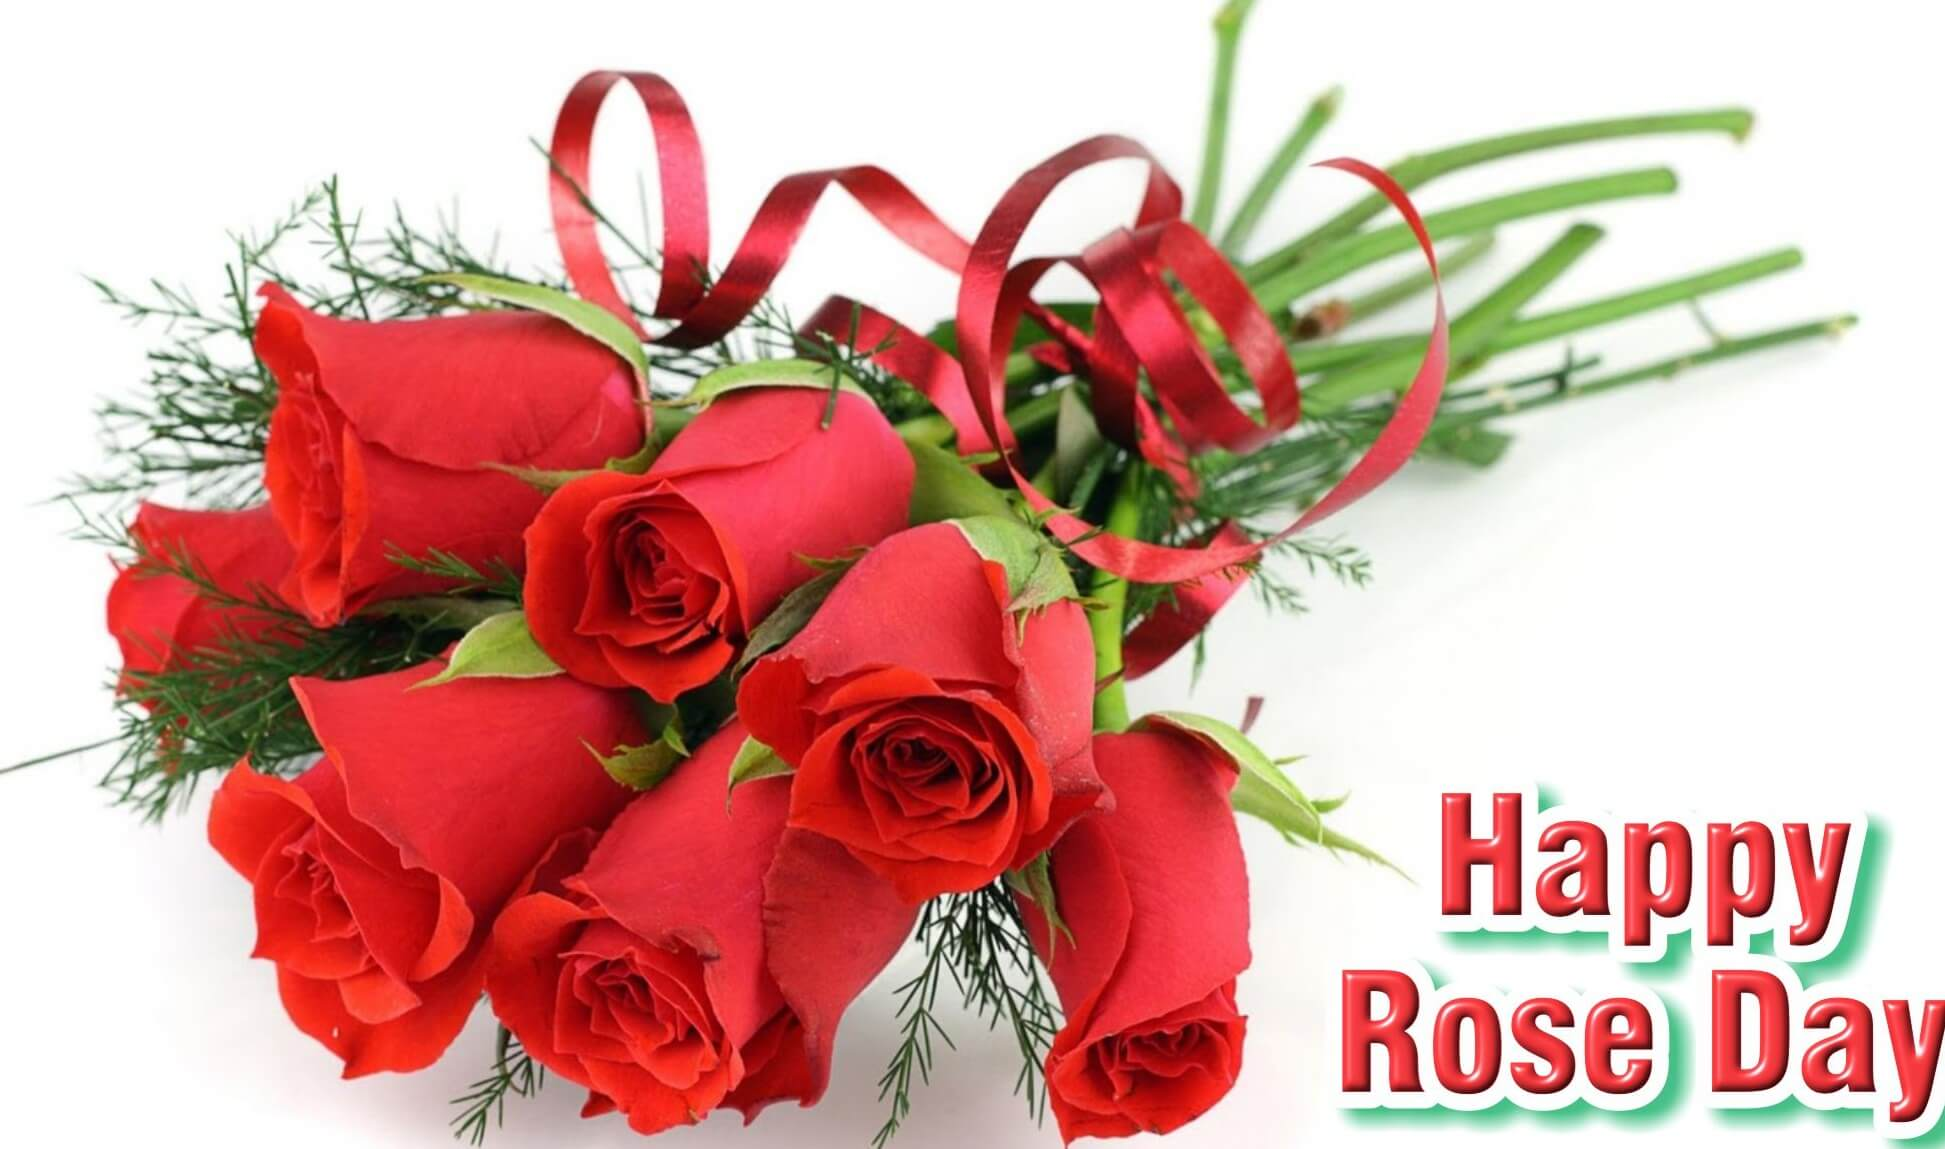 happy rose day wishes image picture background desktop hd wallpaper